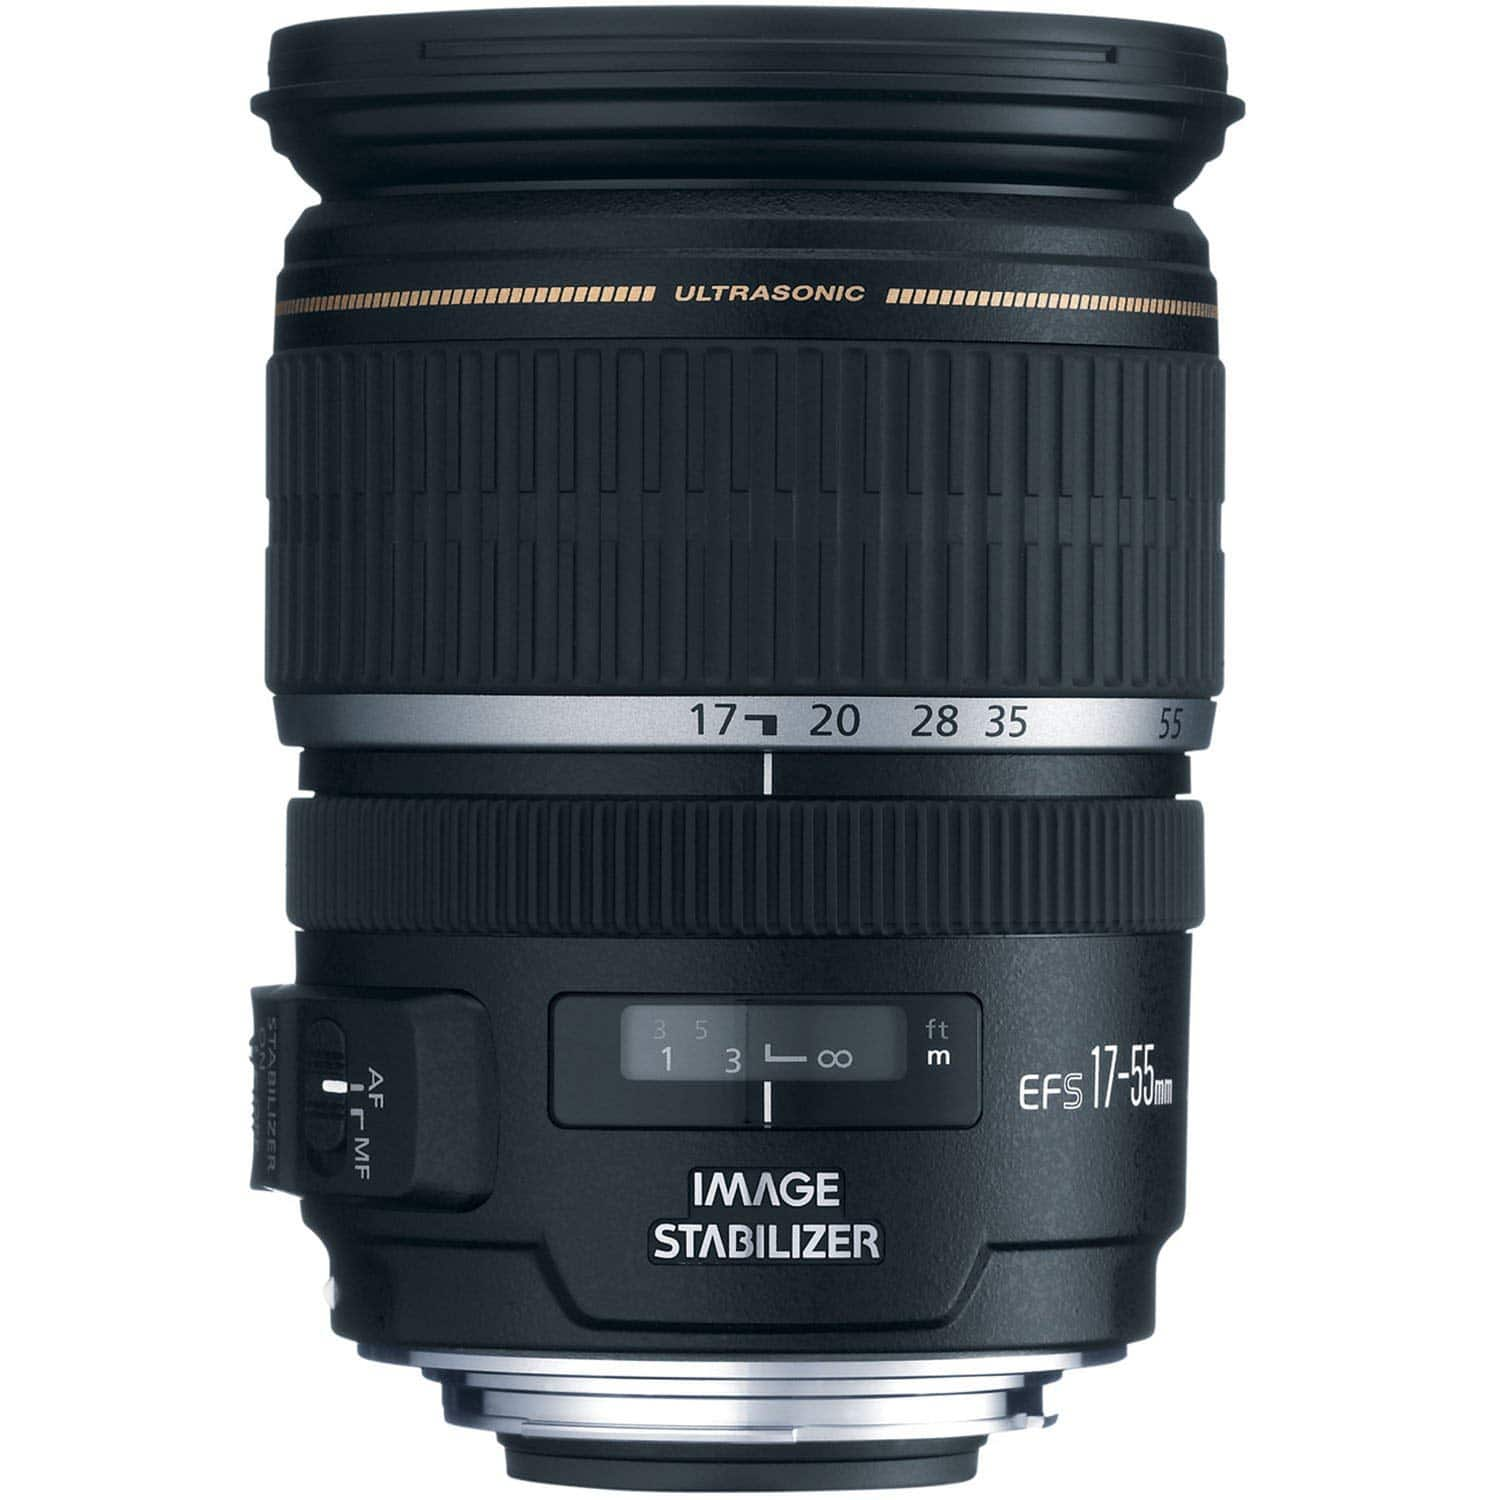 Canon EF 5 17-55mm f/2.8 IS USM.  $549 lowest on CCC